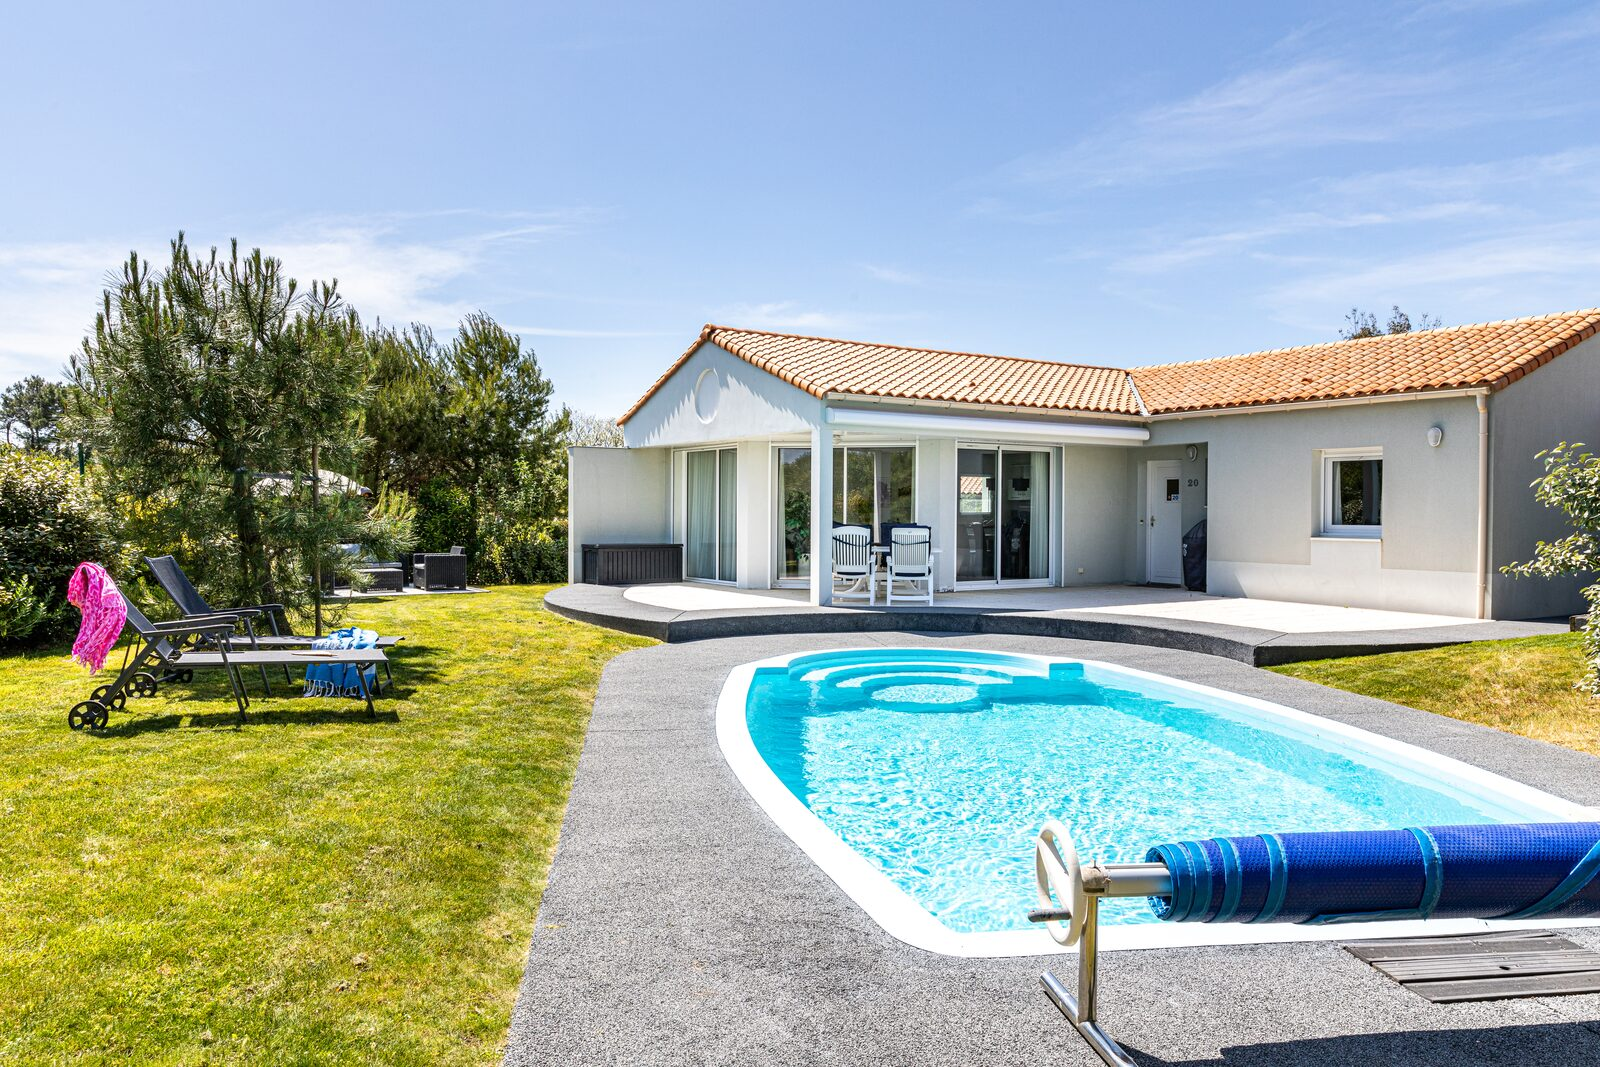 Relaxed summer holiday with private pool in France?